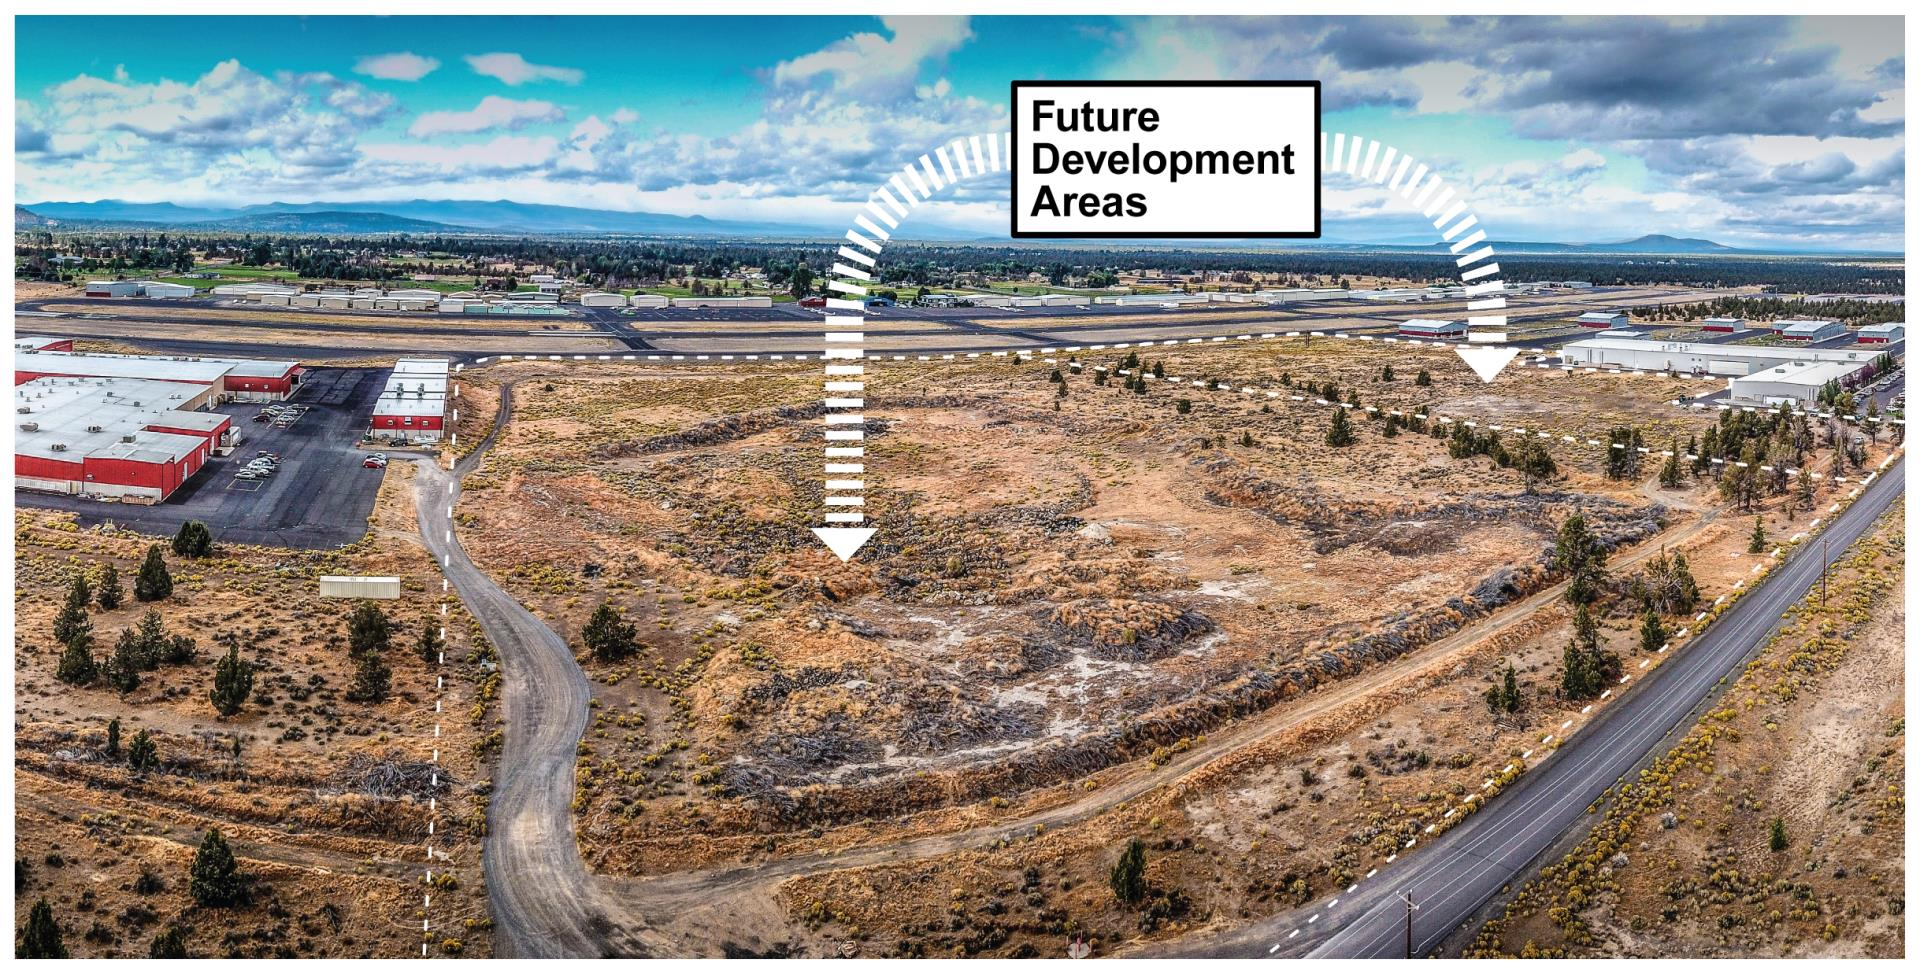 Aerial photo showing future development areas at the Bend Municipal Airport.